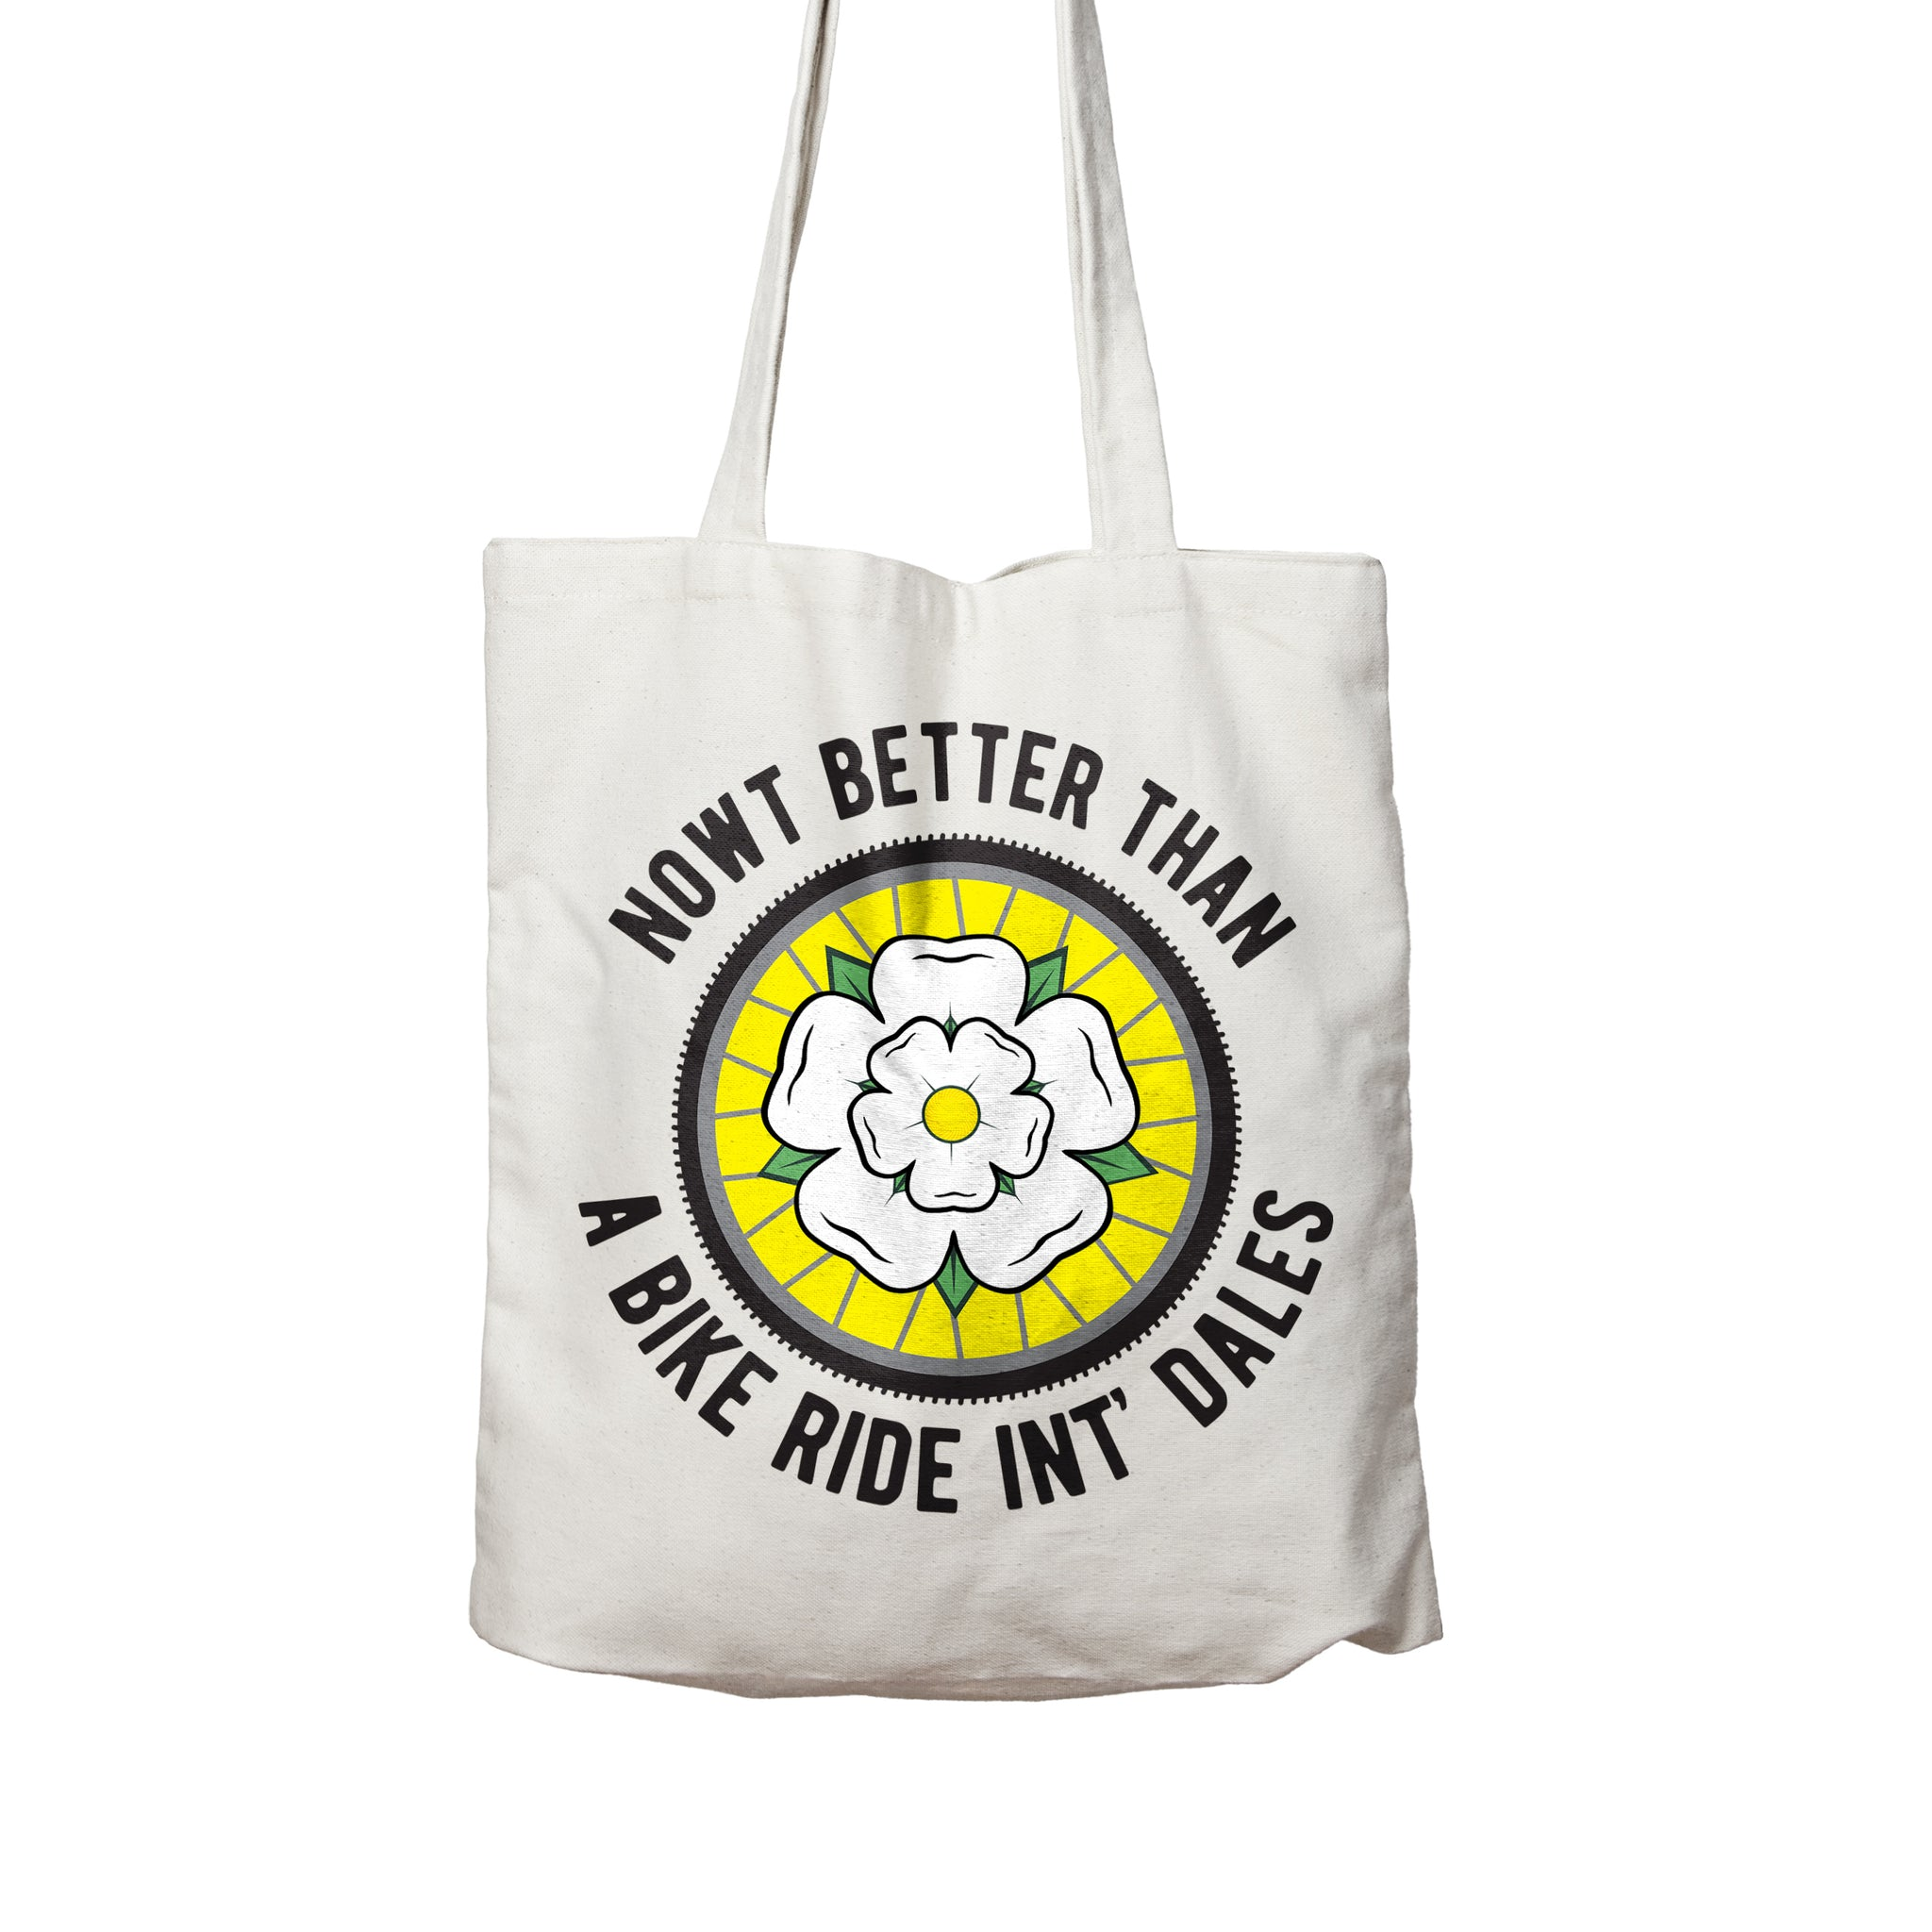 Bike Ride Int' Dales Tote Bag